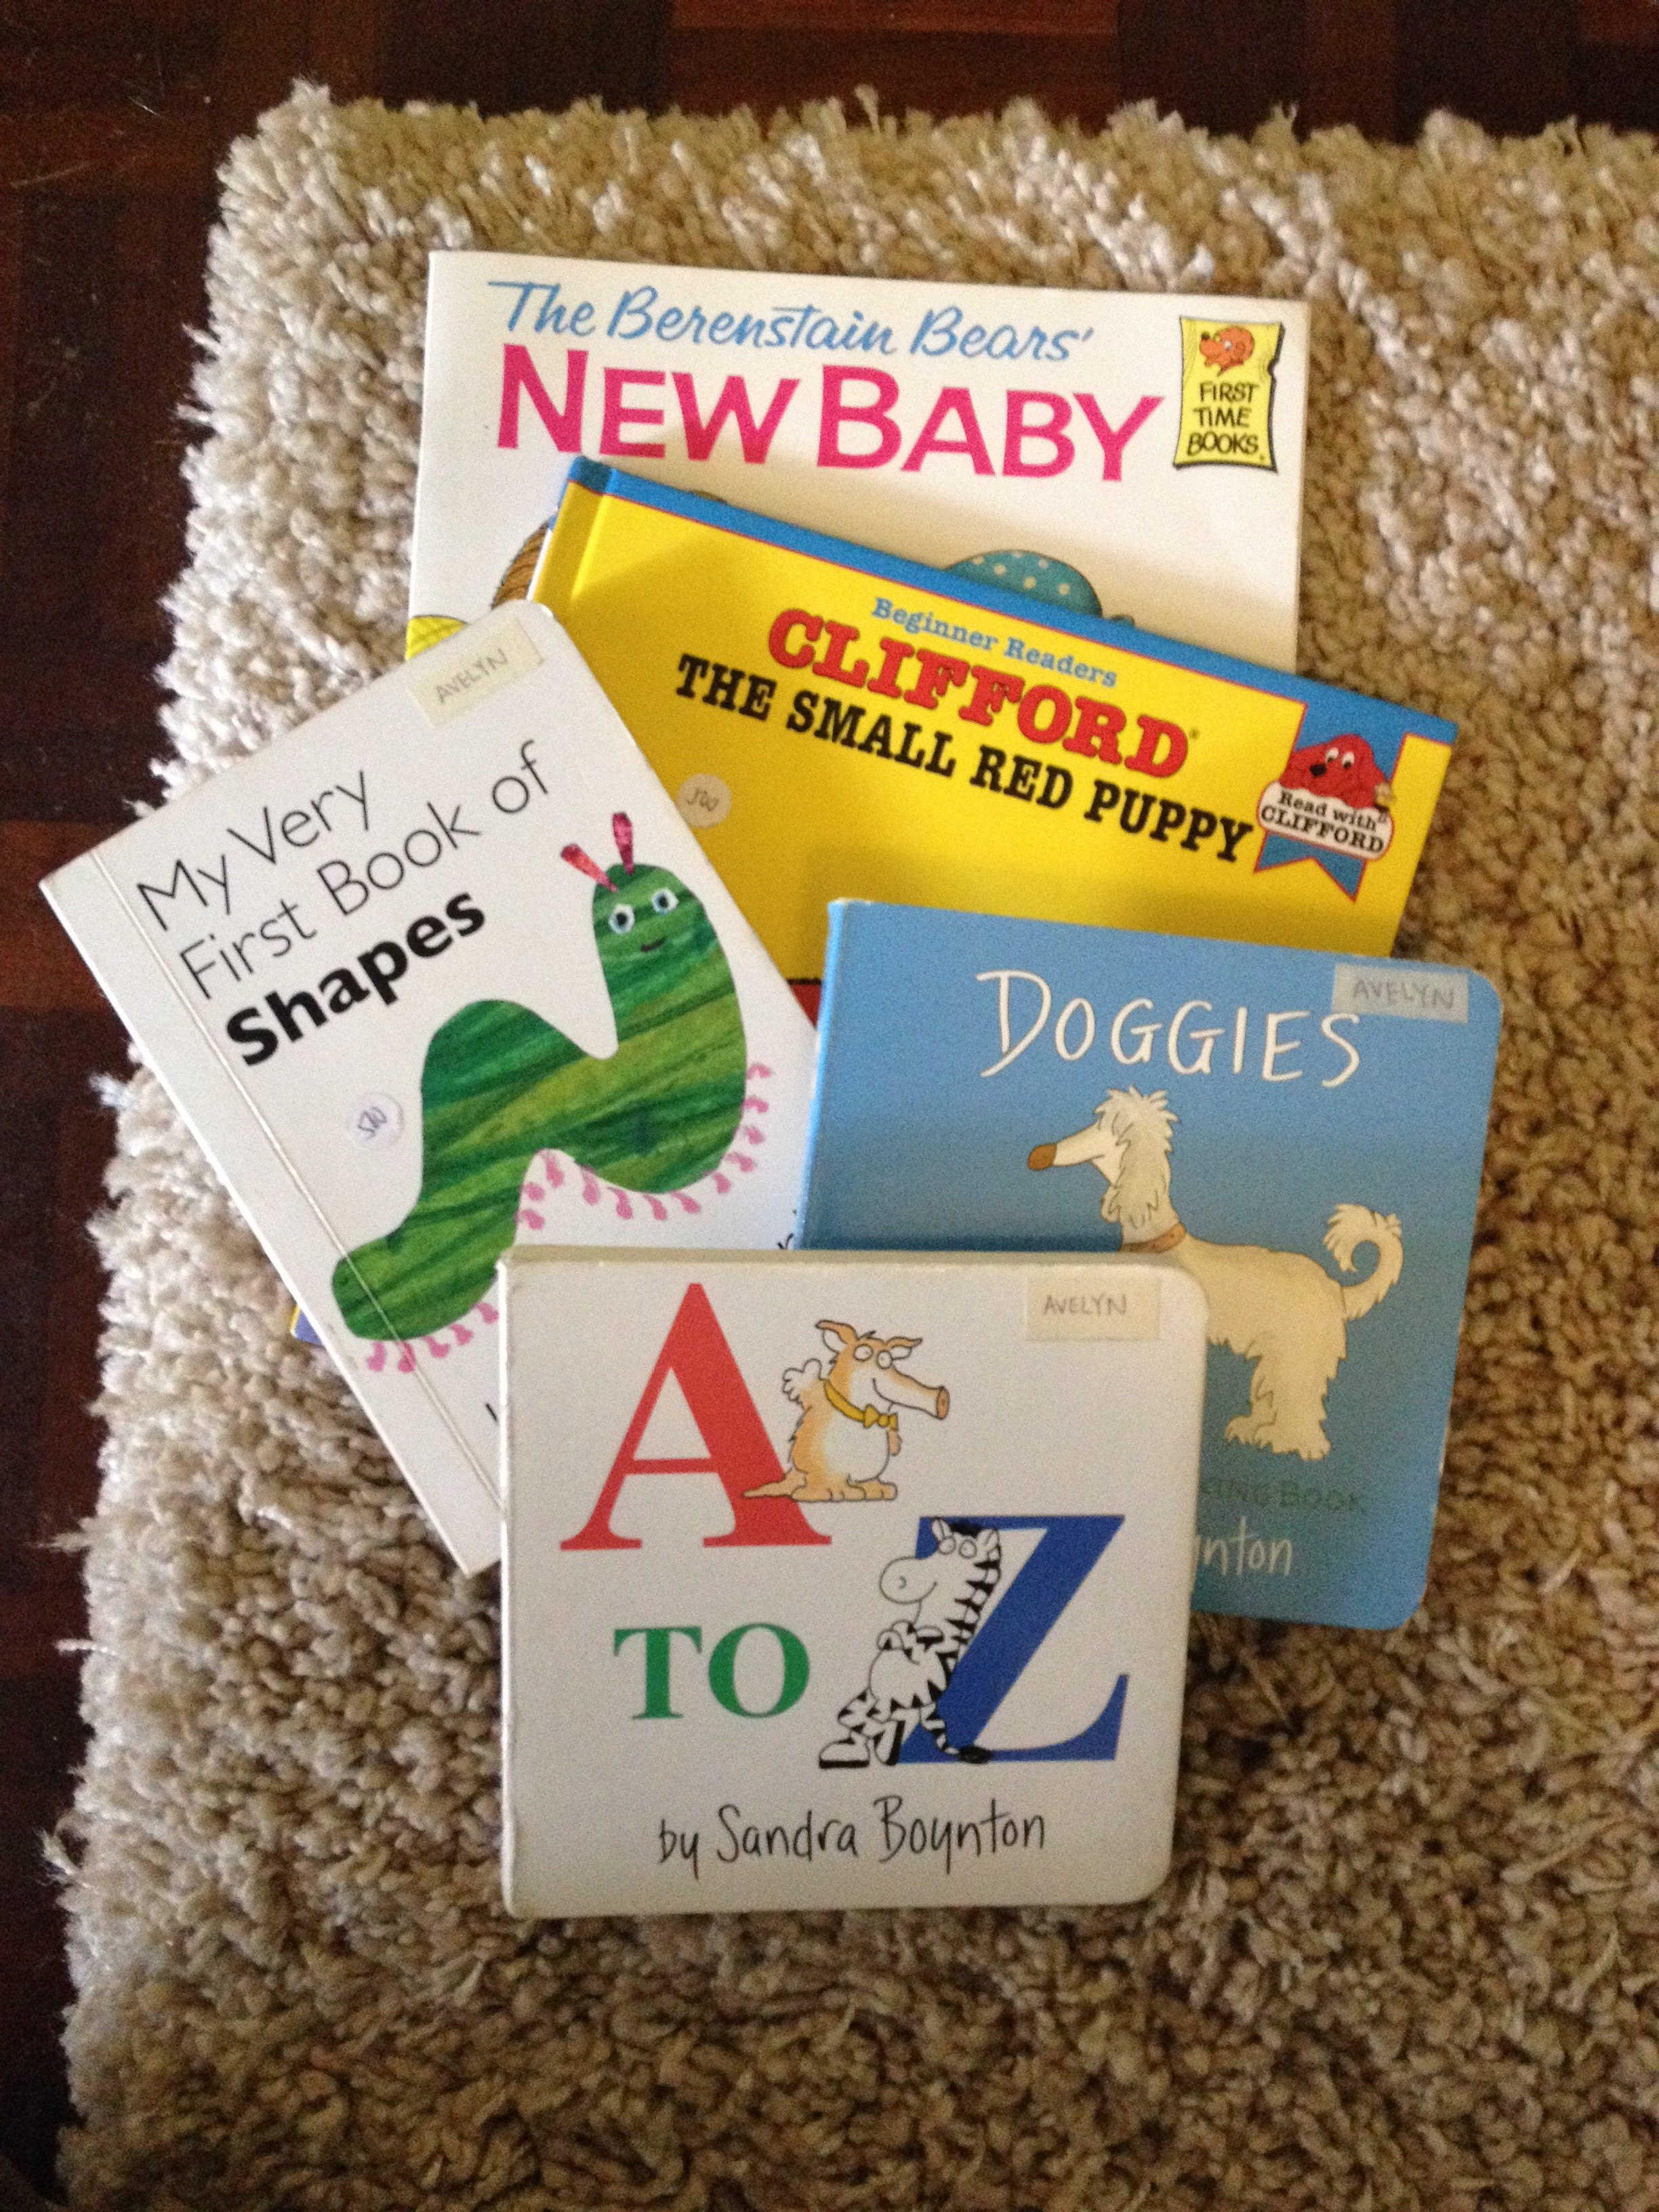 These are the books we received from the toddler book exchange this month. Mikayla's favorite is the shape book.